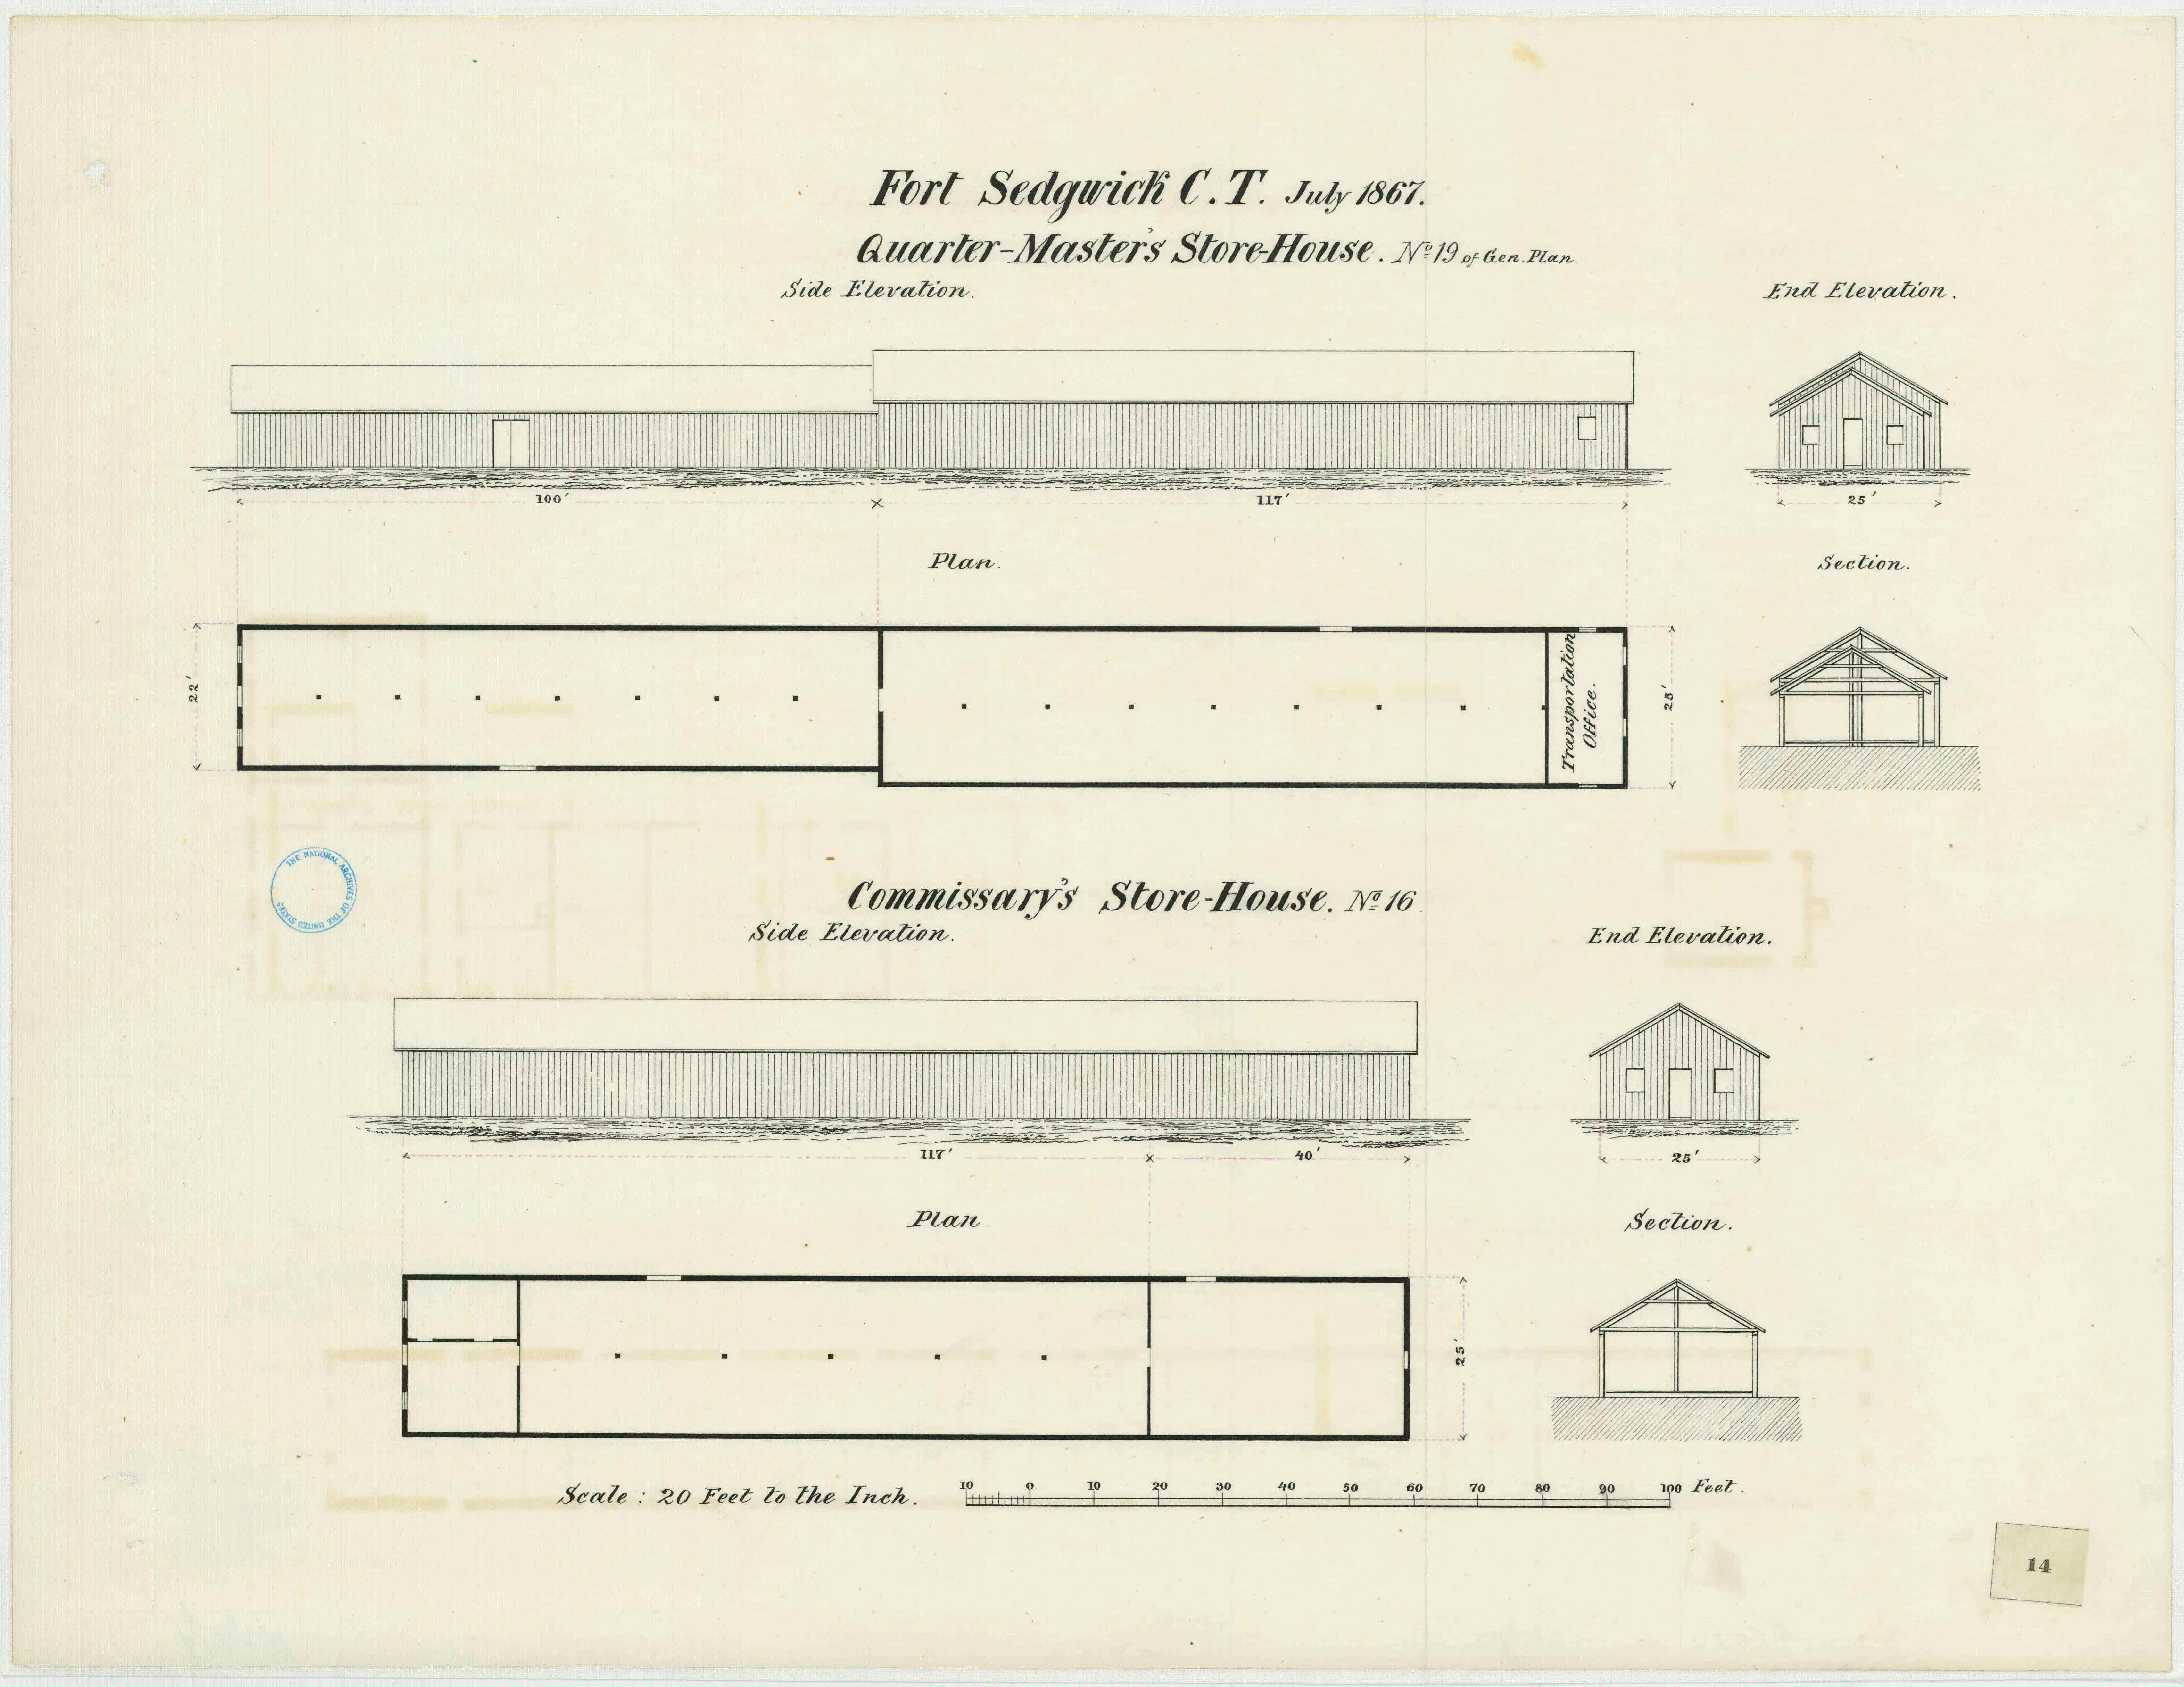 July 1867 military architectural plans for the quartermaster's store houses and saddler's shop at Fort Sedgwick (Courtesy of the Map Division, Archives II, NARA)